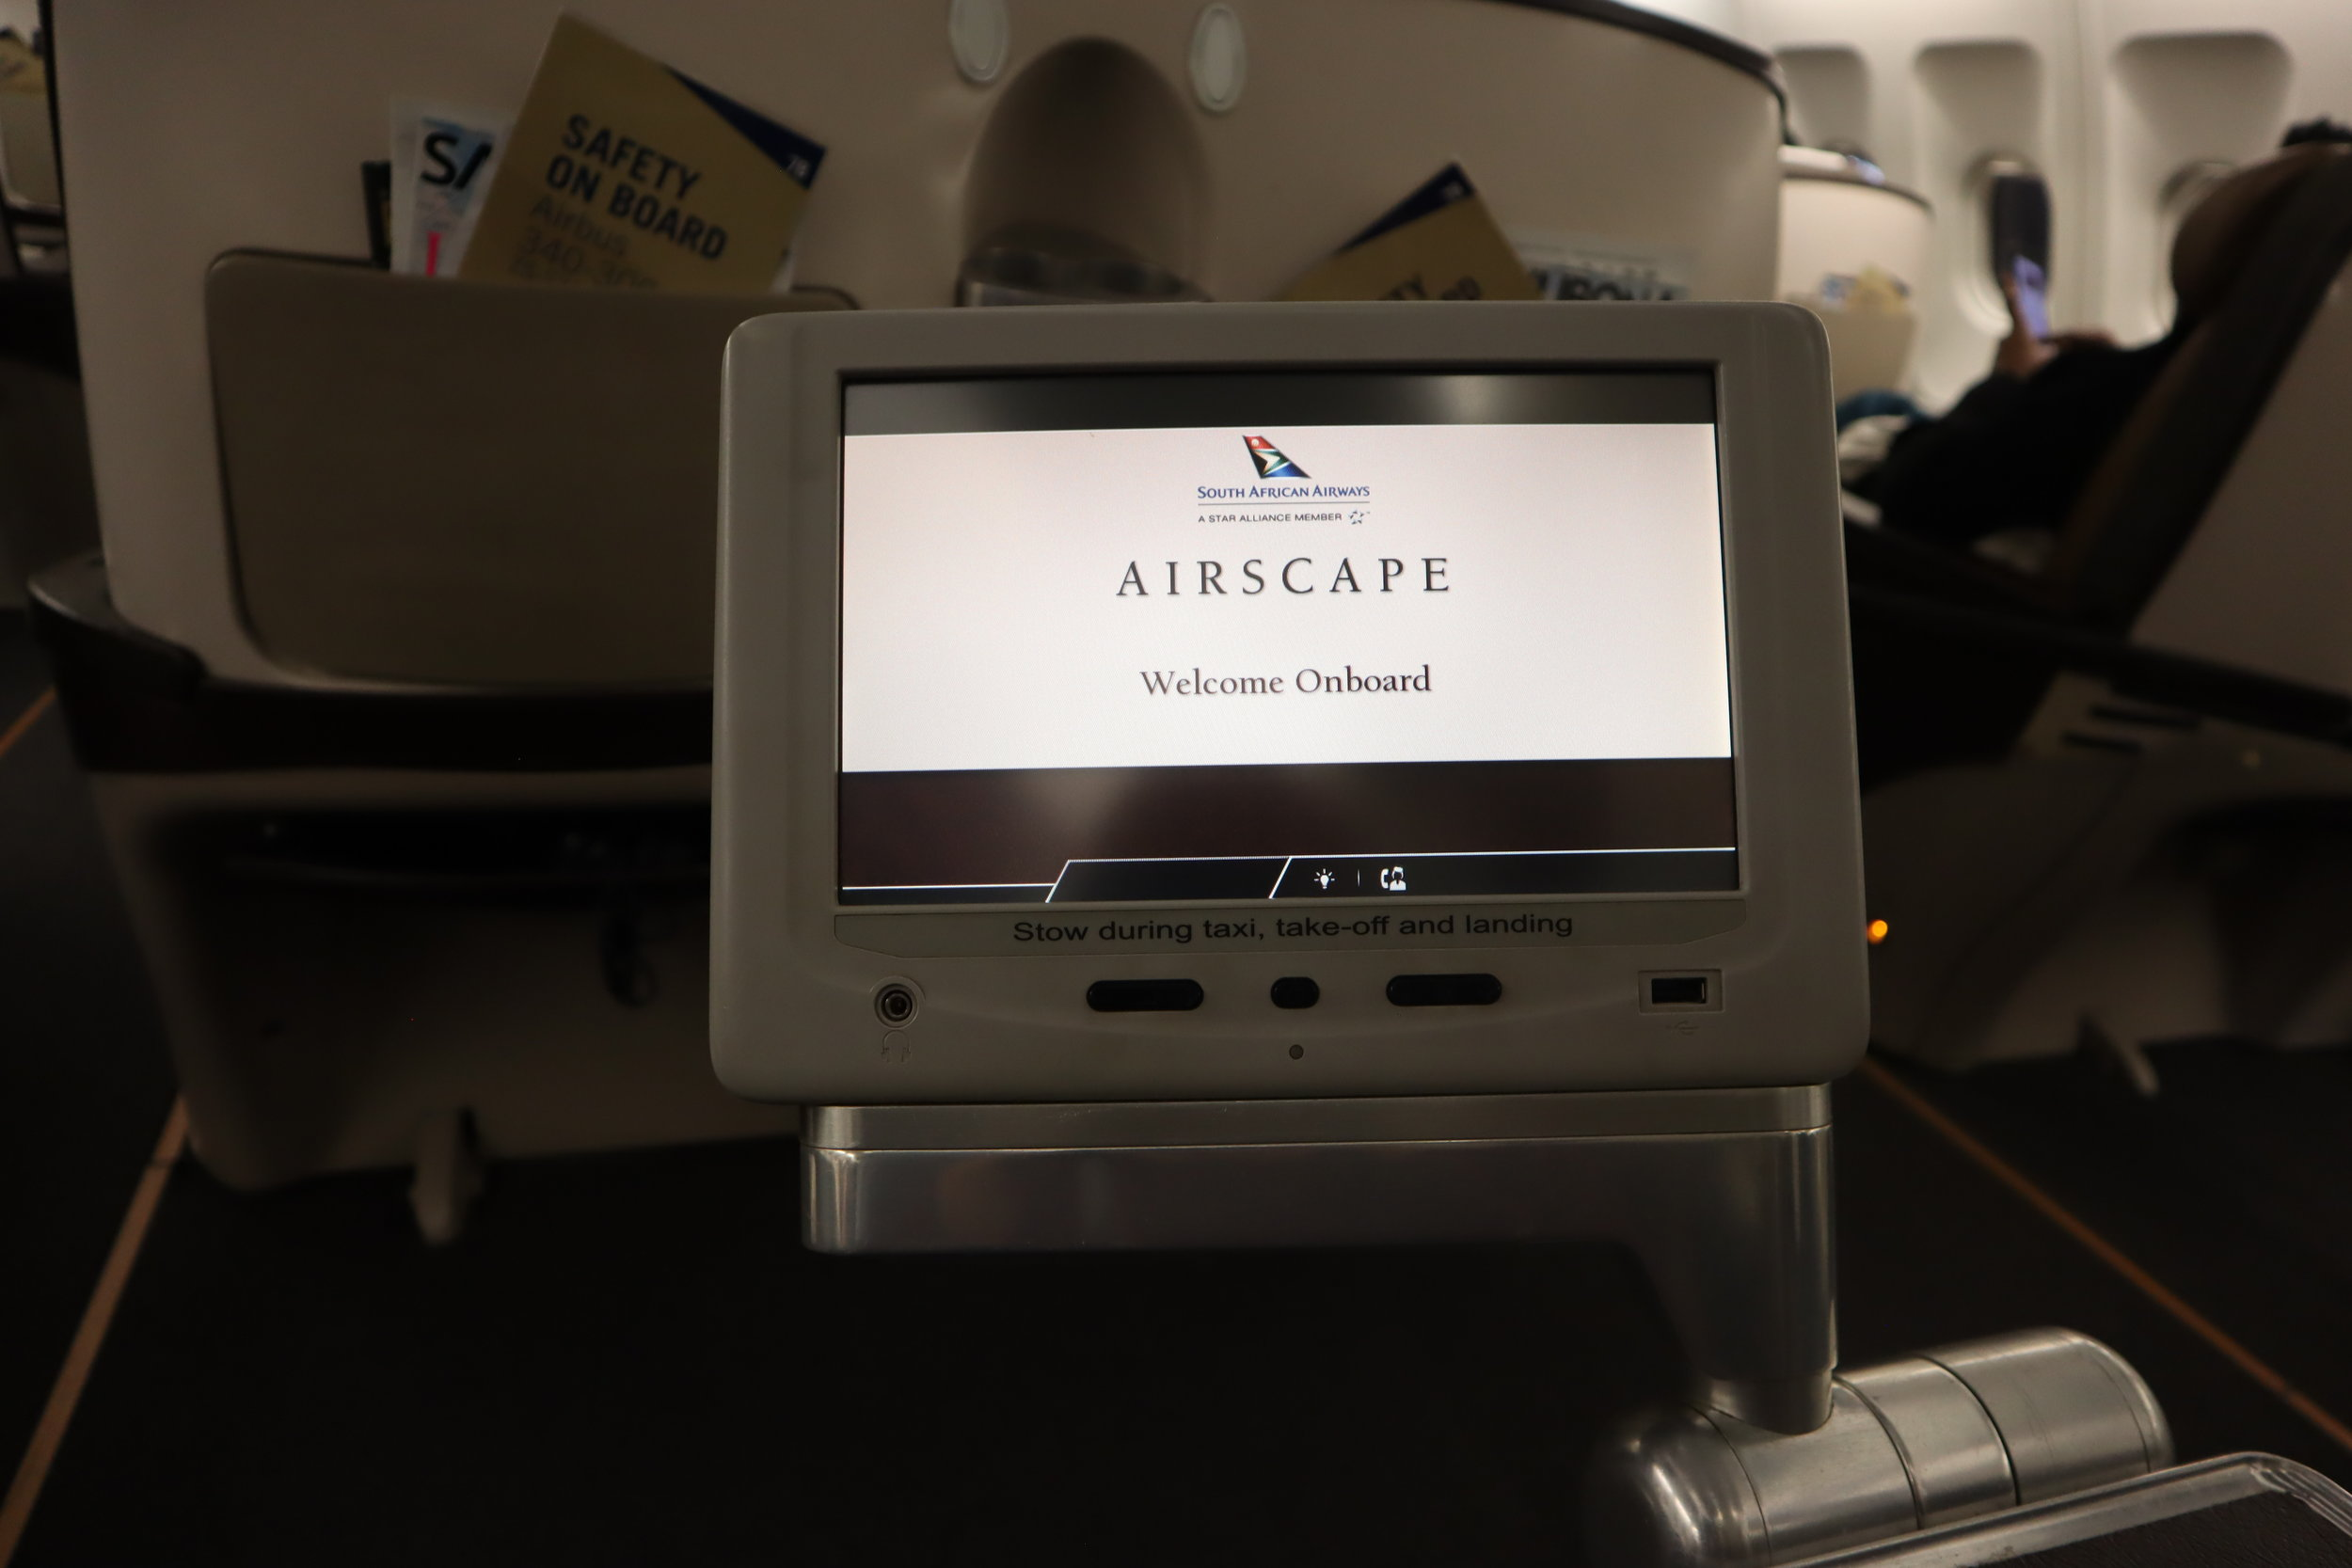 South African Airways business class – Entertainment monitor